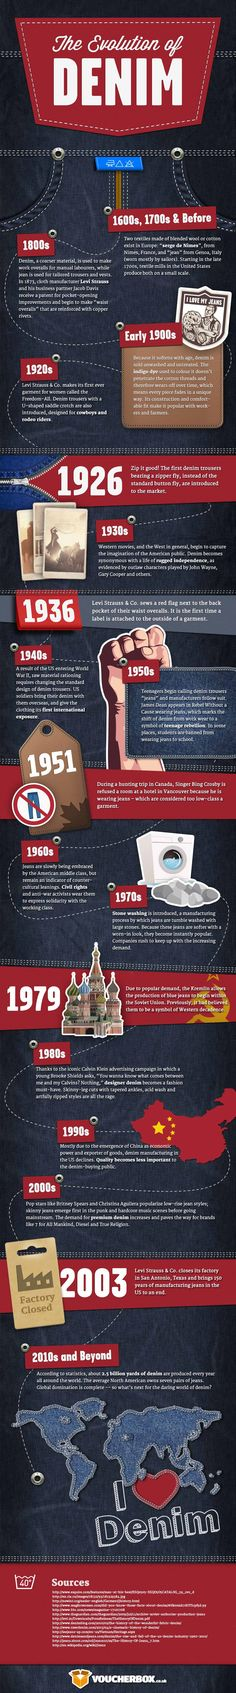 The Evolution of Denim #infographic #Denim #Fashion #Jeans #LifeStyle #History